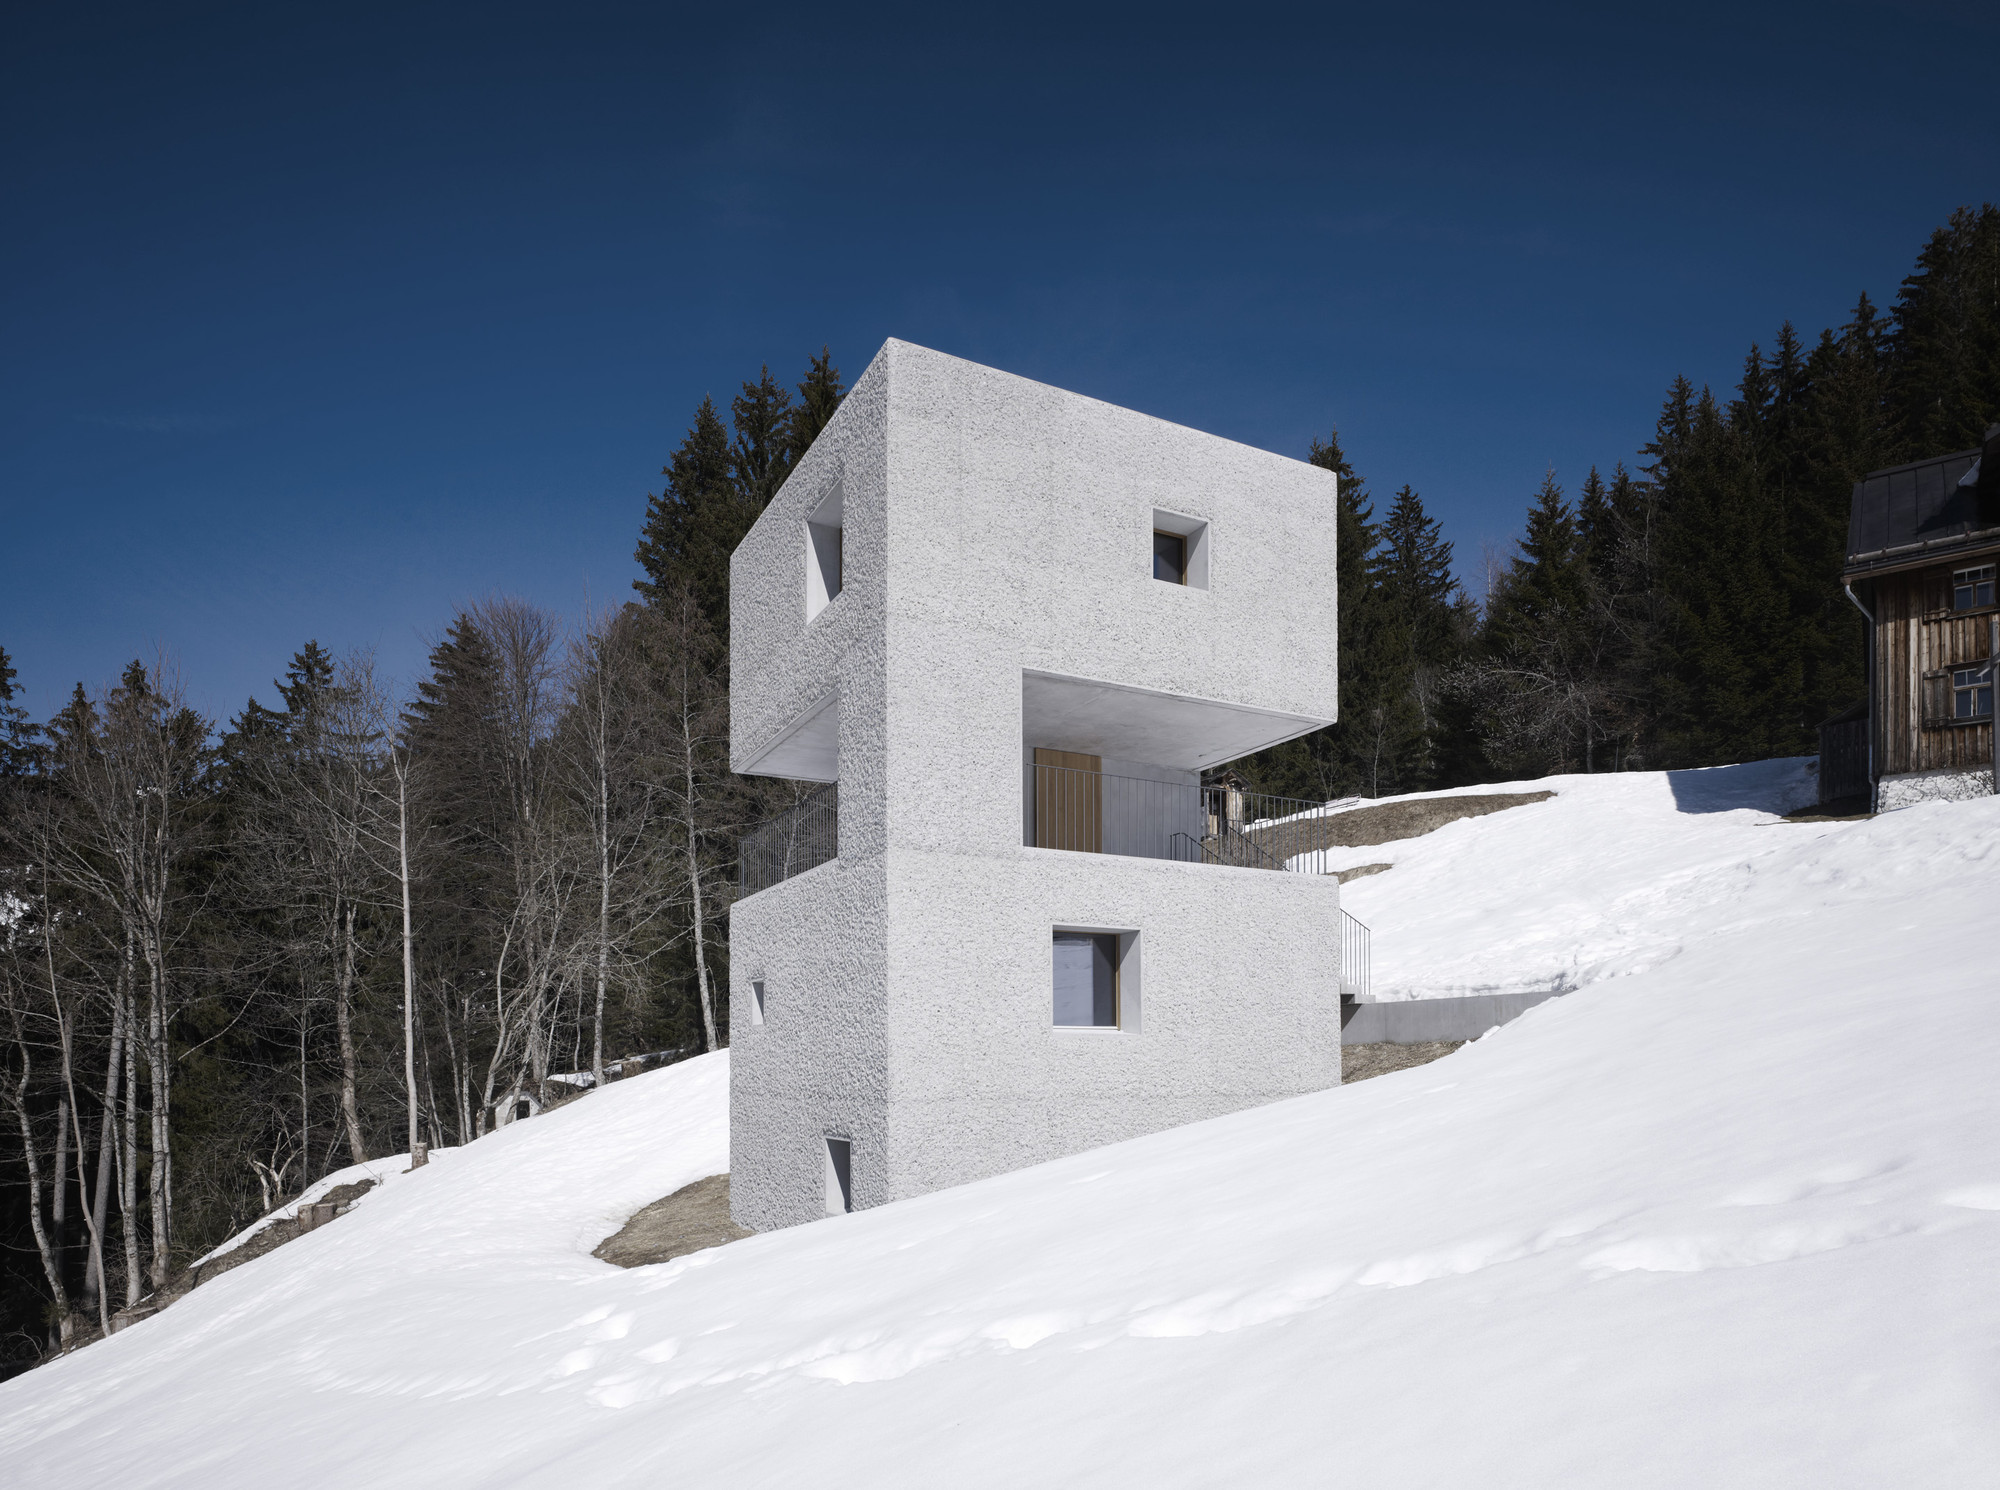 Mountain Cabin / Marte.Marte Architekten, © Marc Lins